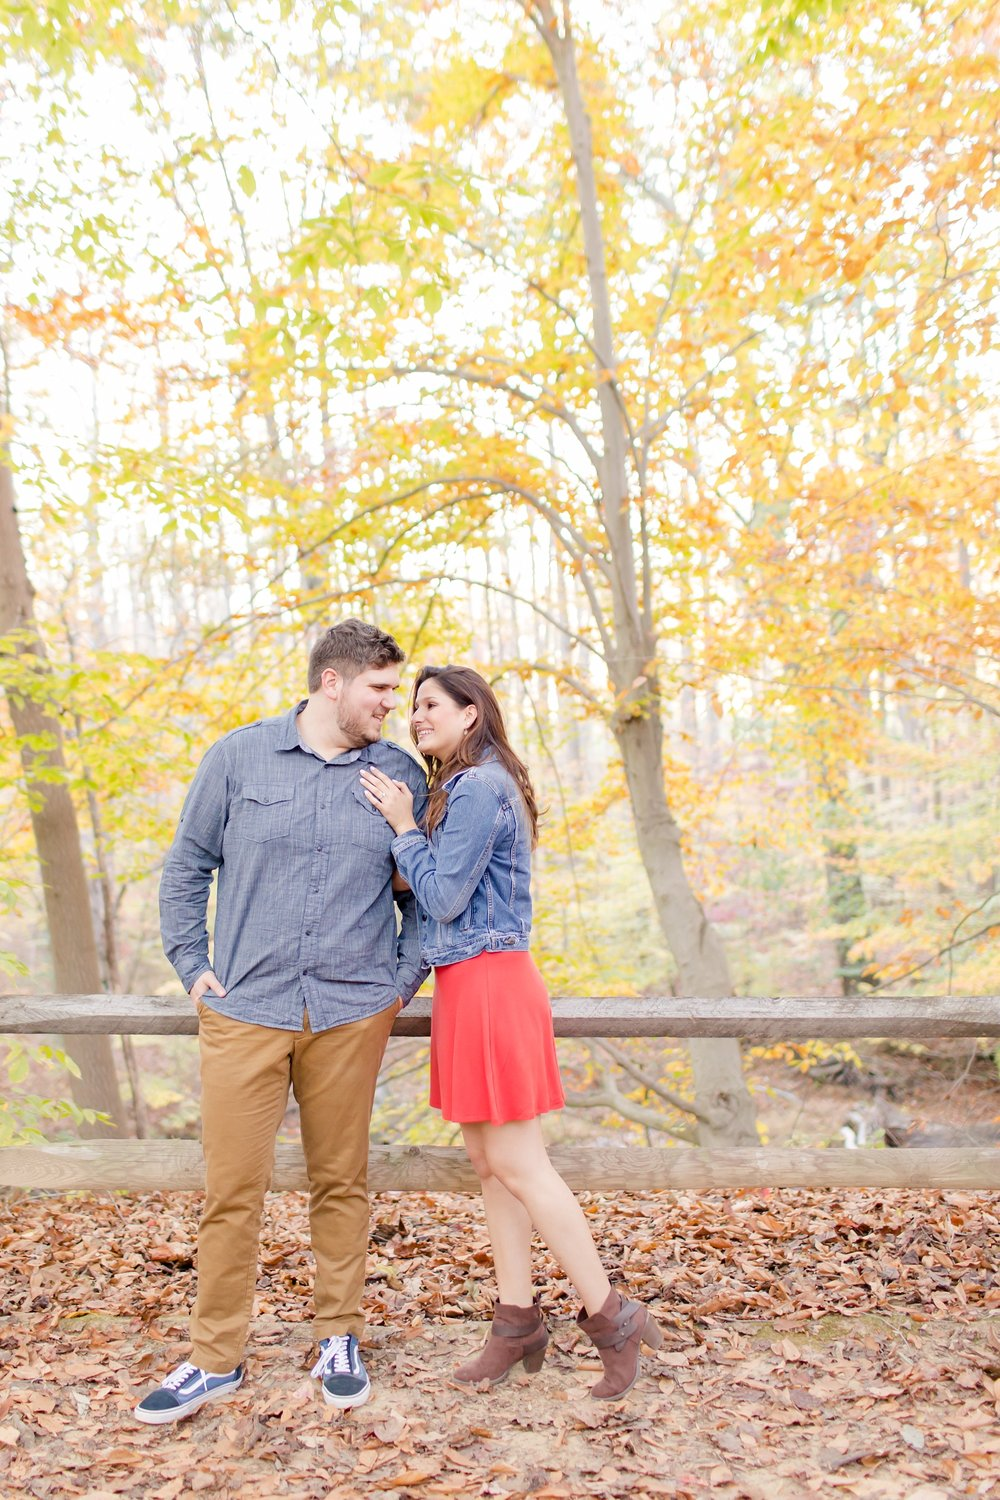 Rebecca & Greg Engagement-134_anna grace photography baltimore maryland engagement photographer jerusalem mill engagementphoto.jpg